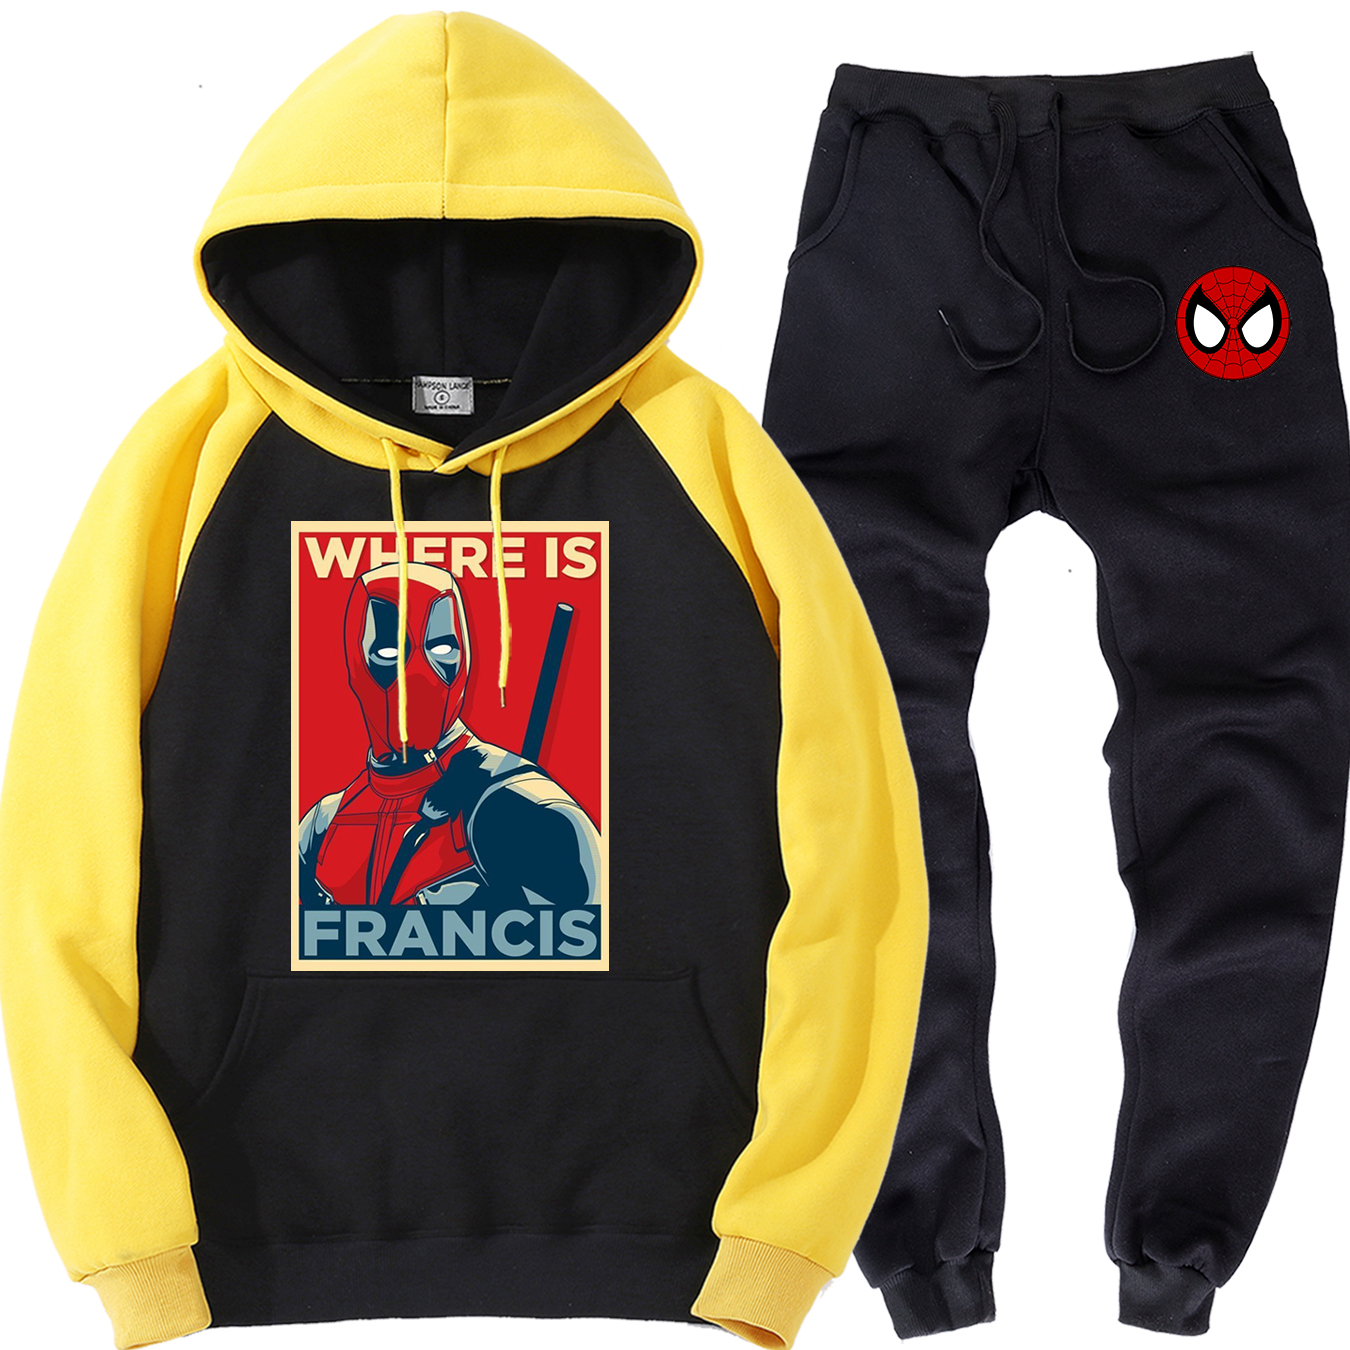 Deadpool And Spiderman Clothing Sets For Men Spring Autumn New Style Warm Hoodies Sports Trousers Street Brand 2 Piece Suit Men